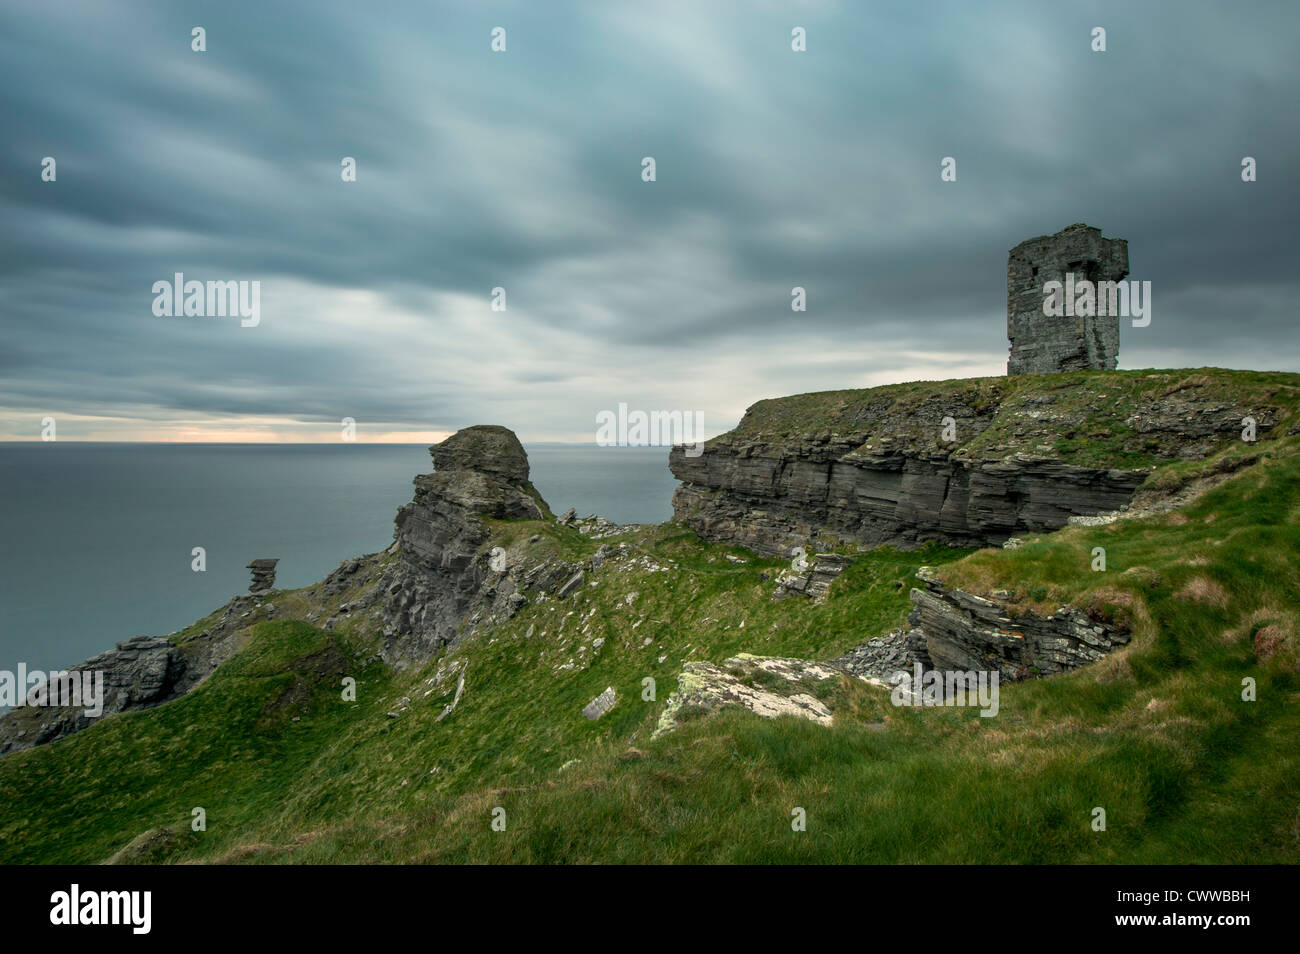 Stone ruins on rural cliffs - Stock Image